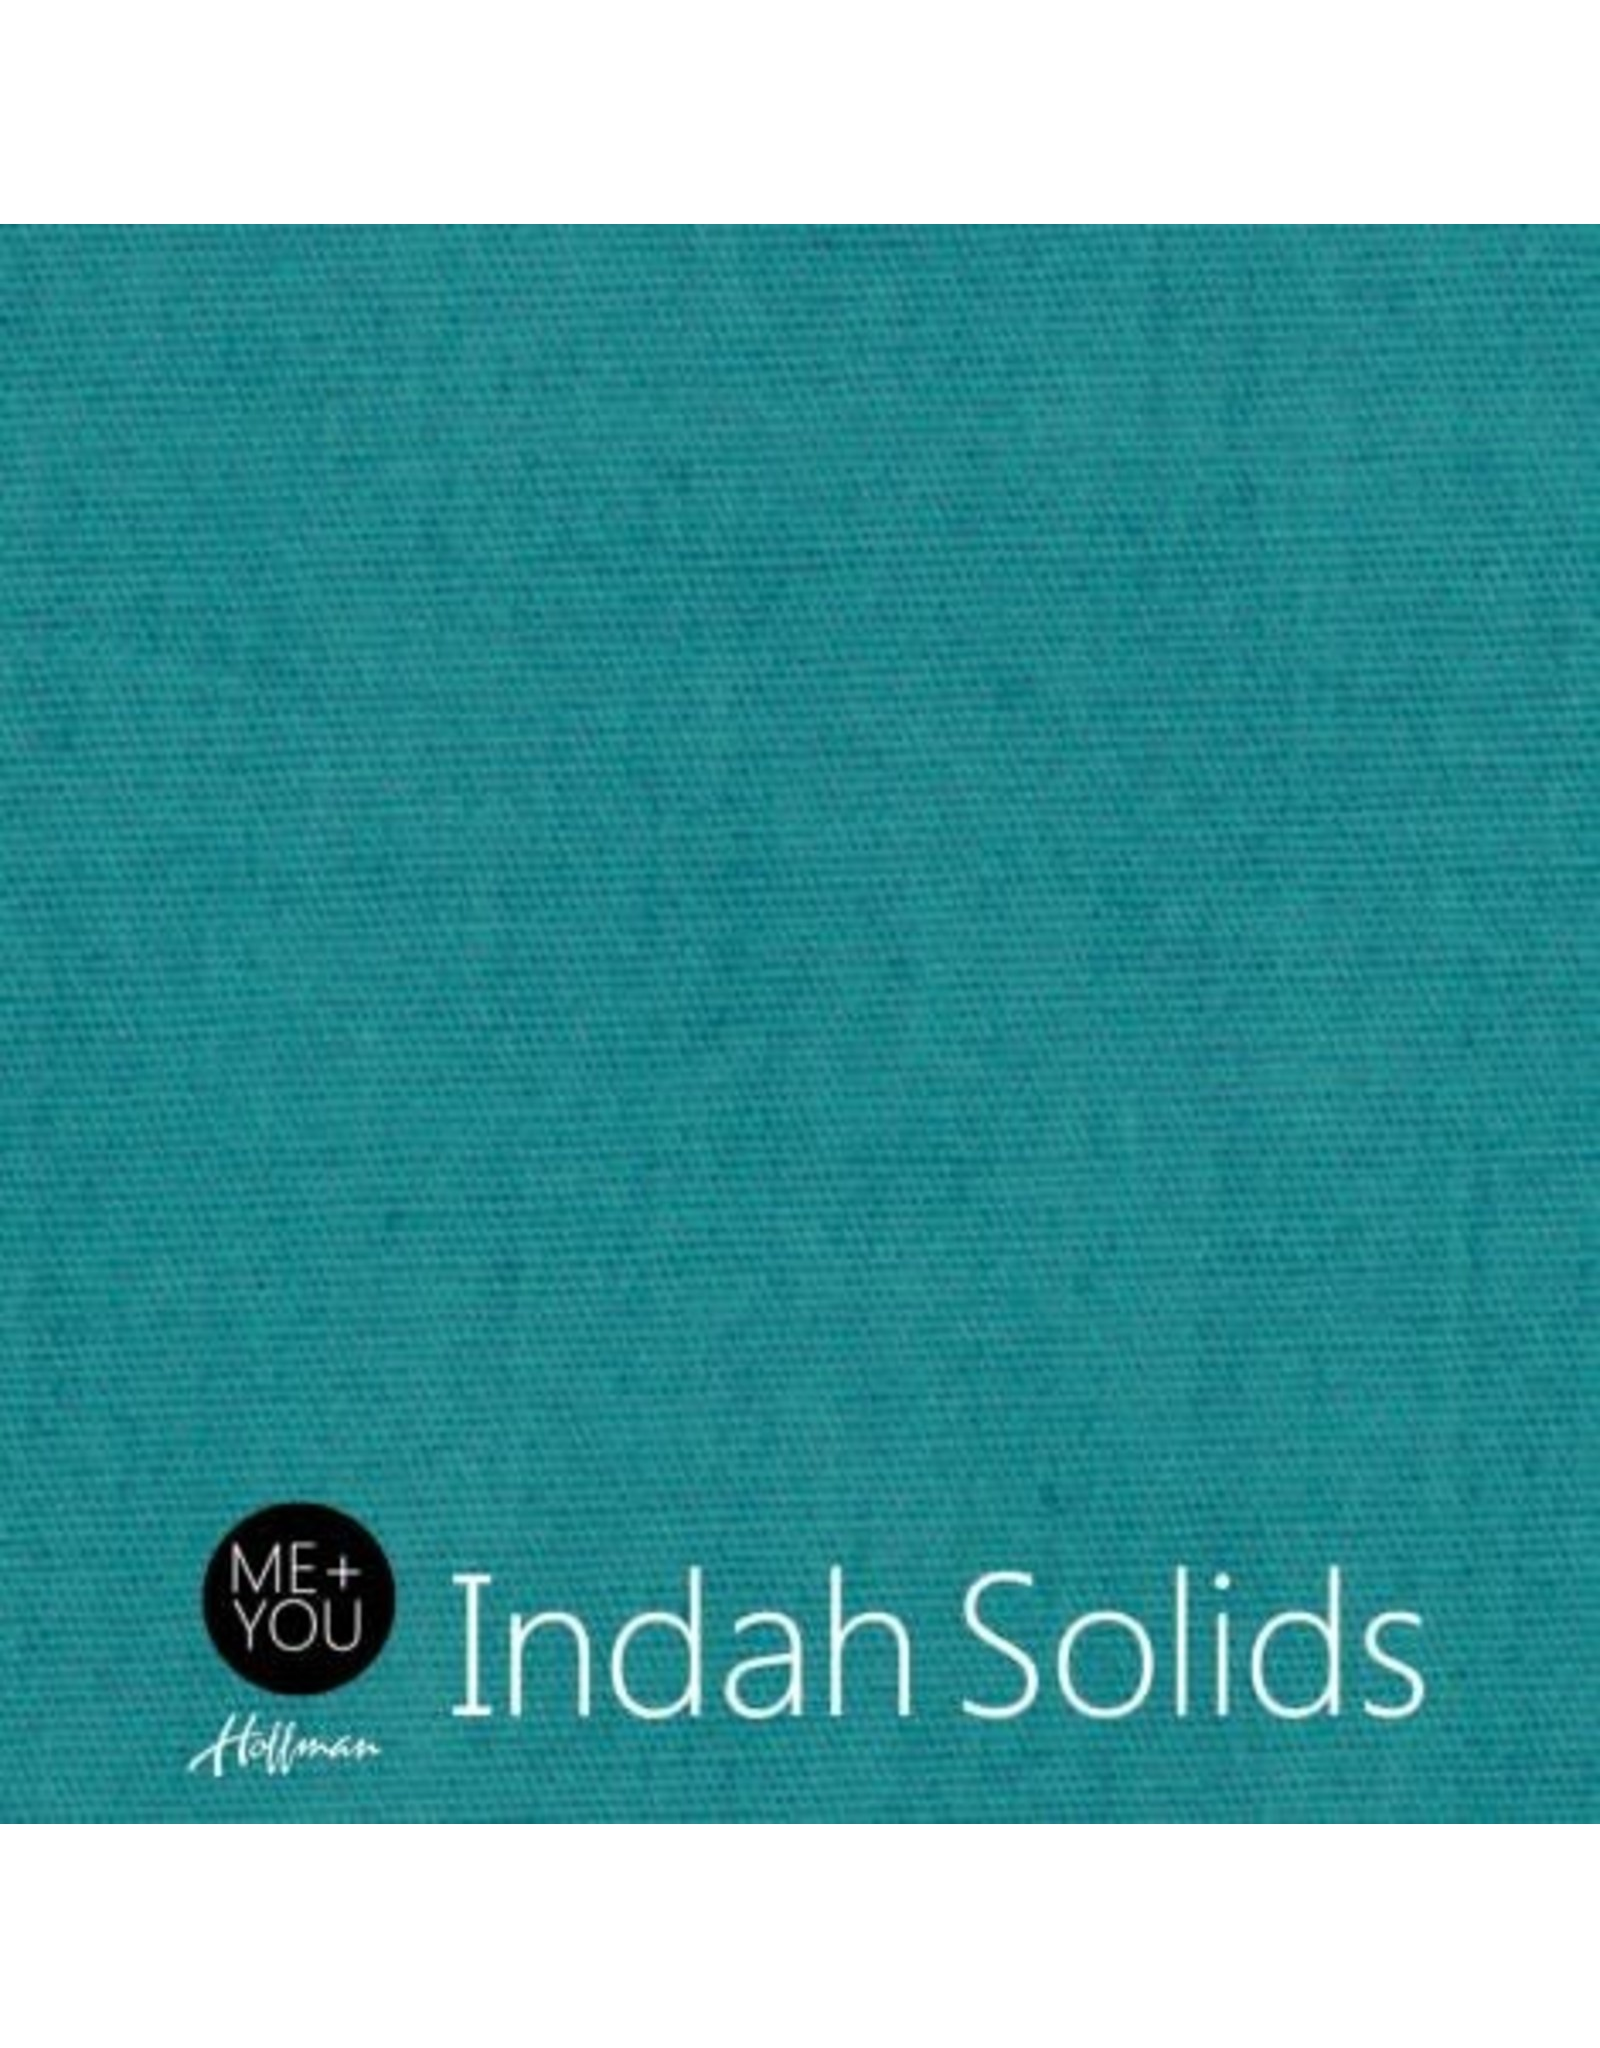 Me+You by Hoffman Fabrics Indah Solids - Teal